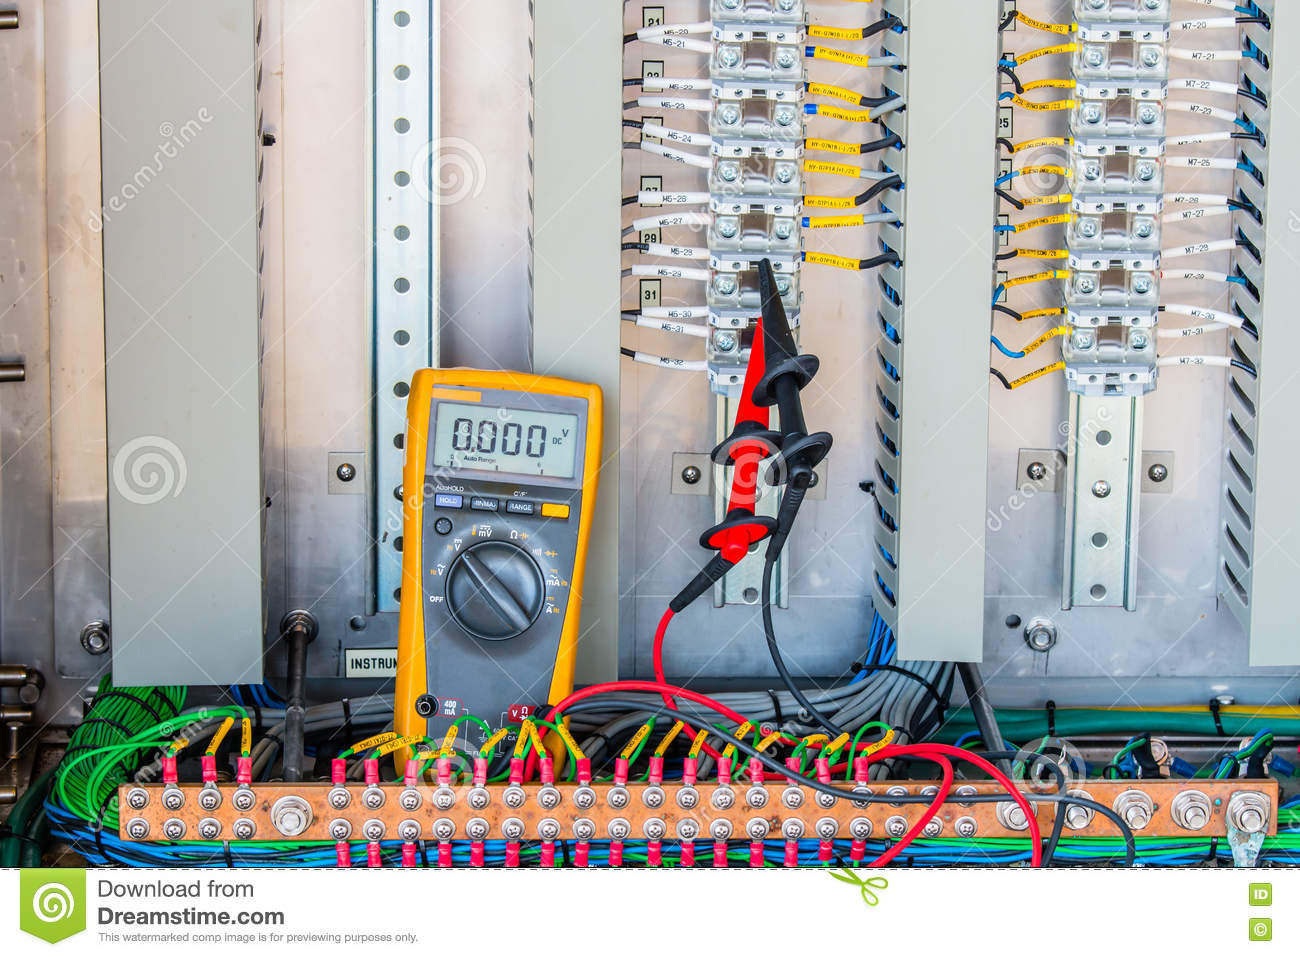 Voltage 24 Vdc Measurement connectivity at terminal of Electrical control panel,terminal ,Voltage measurement